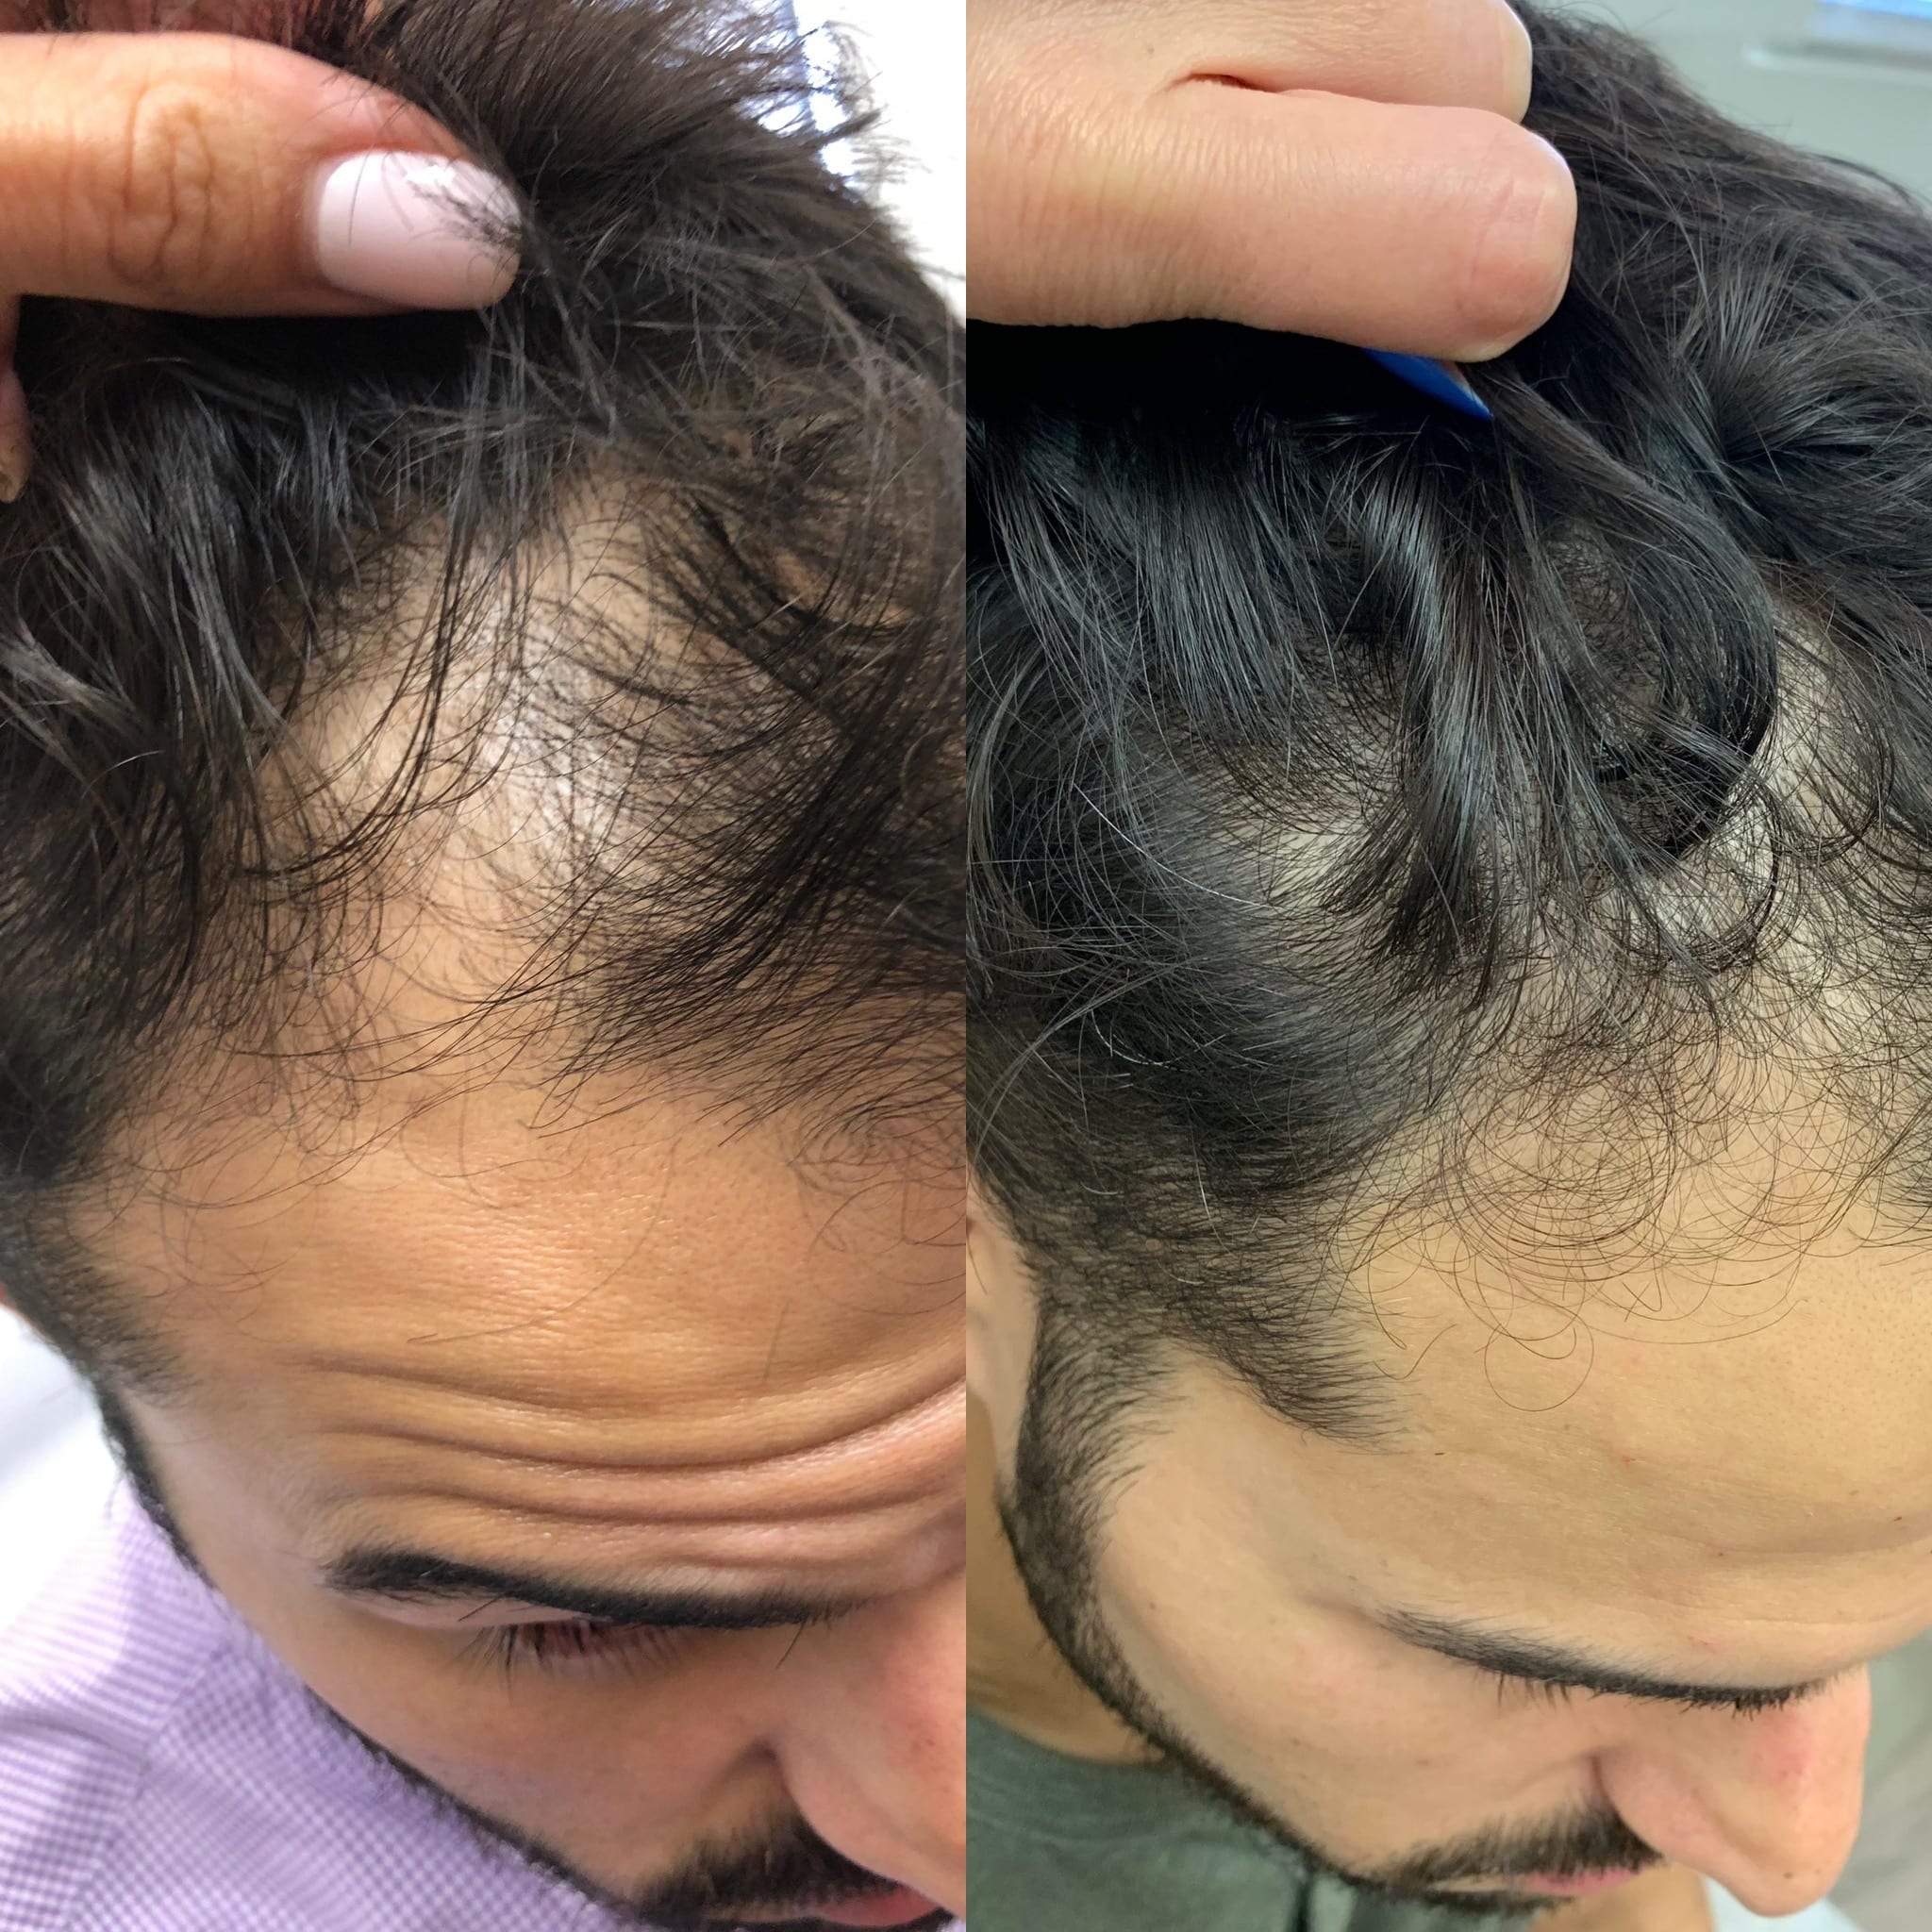 32 y/o East Indian M after 3 treatments of PRP hair injections.